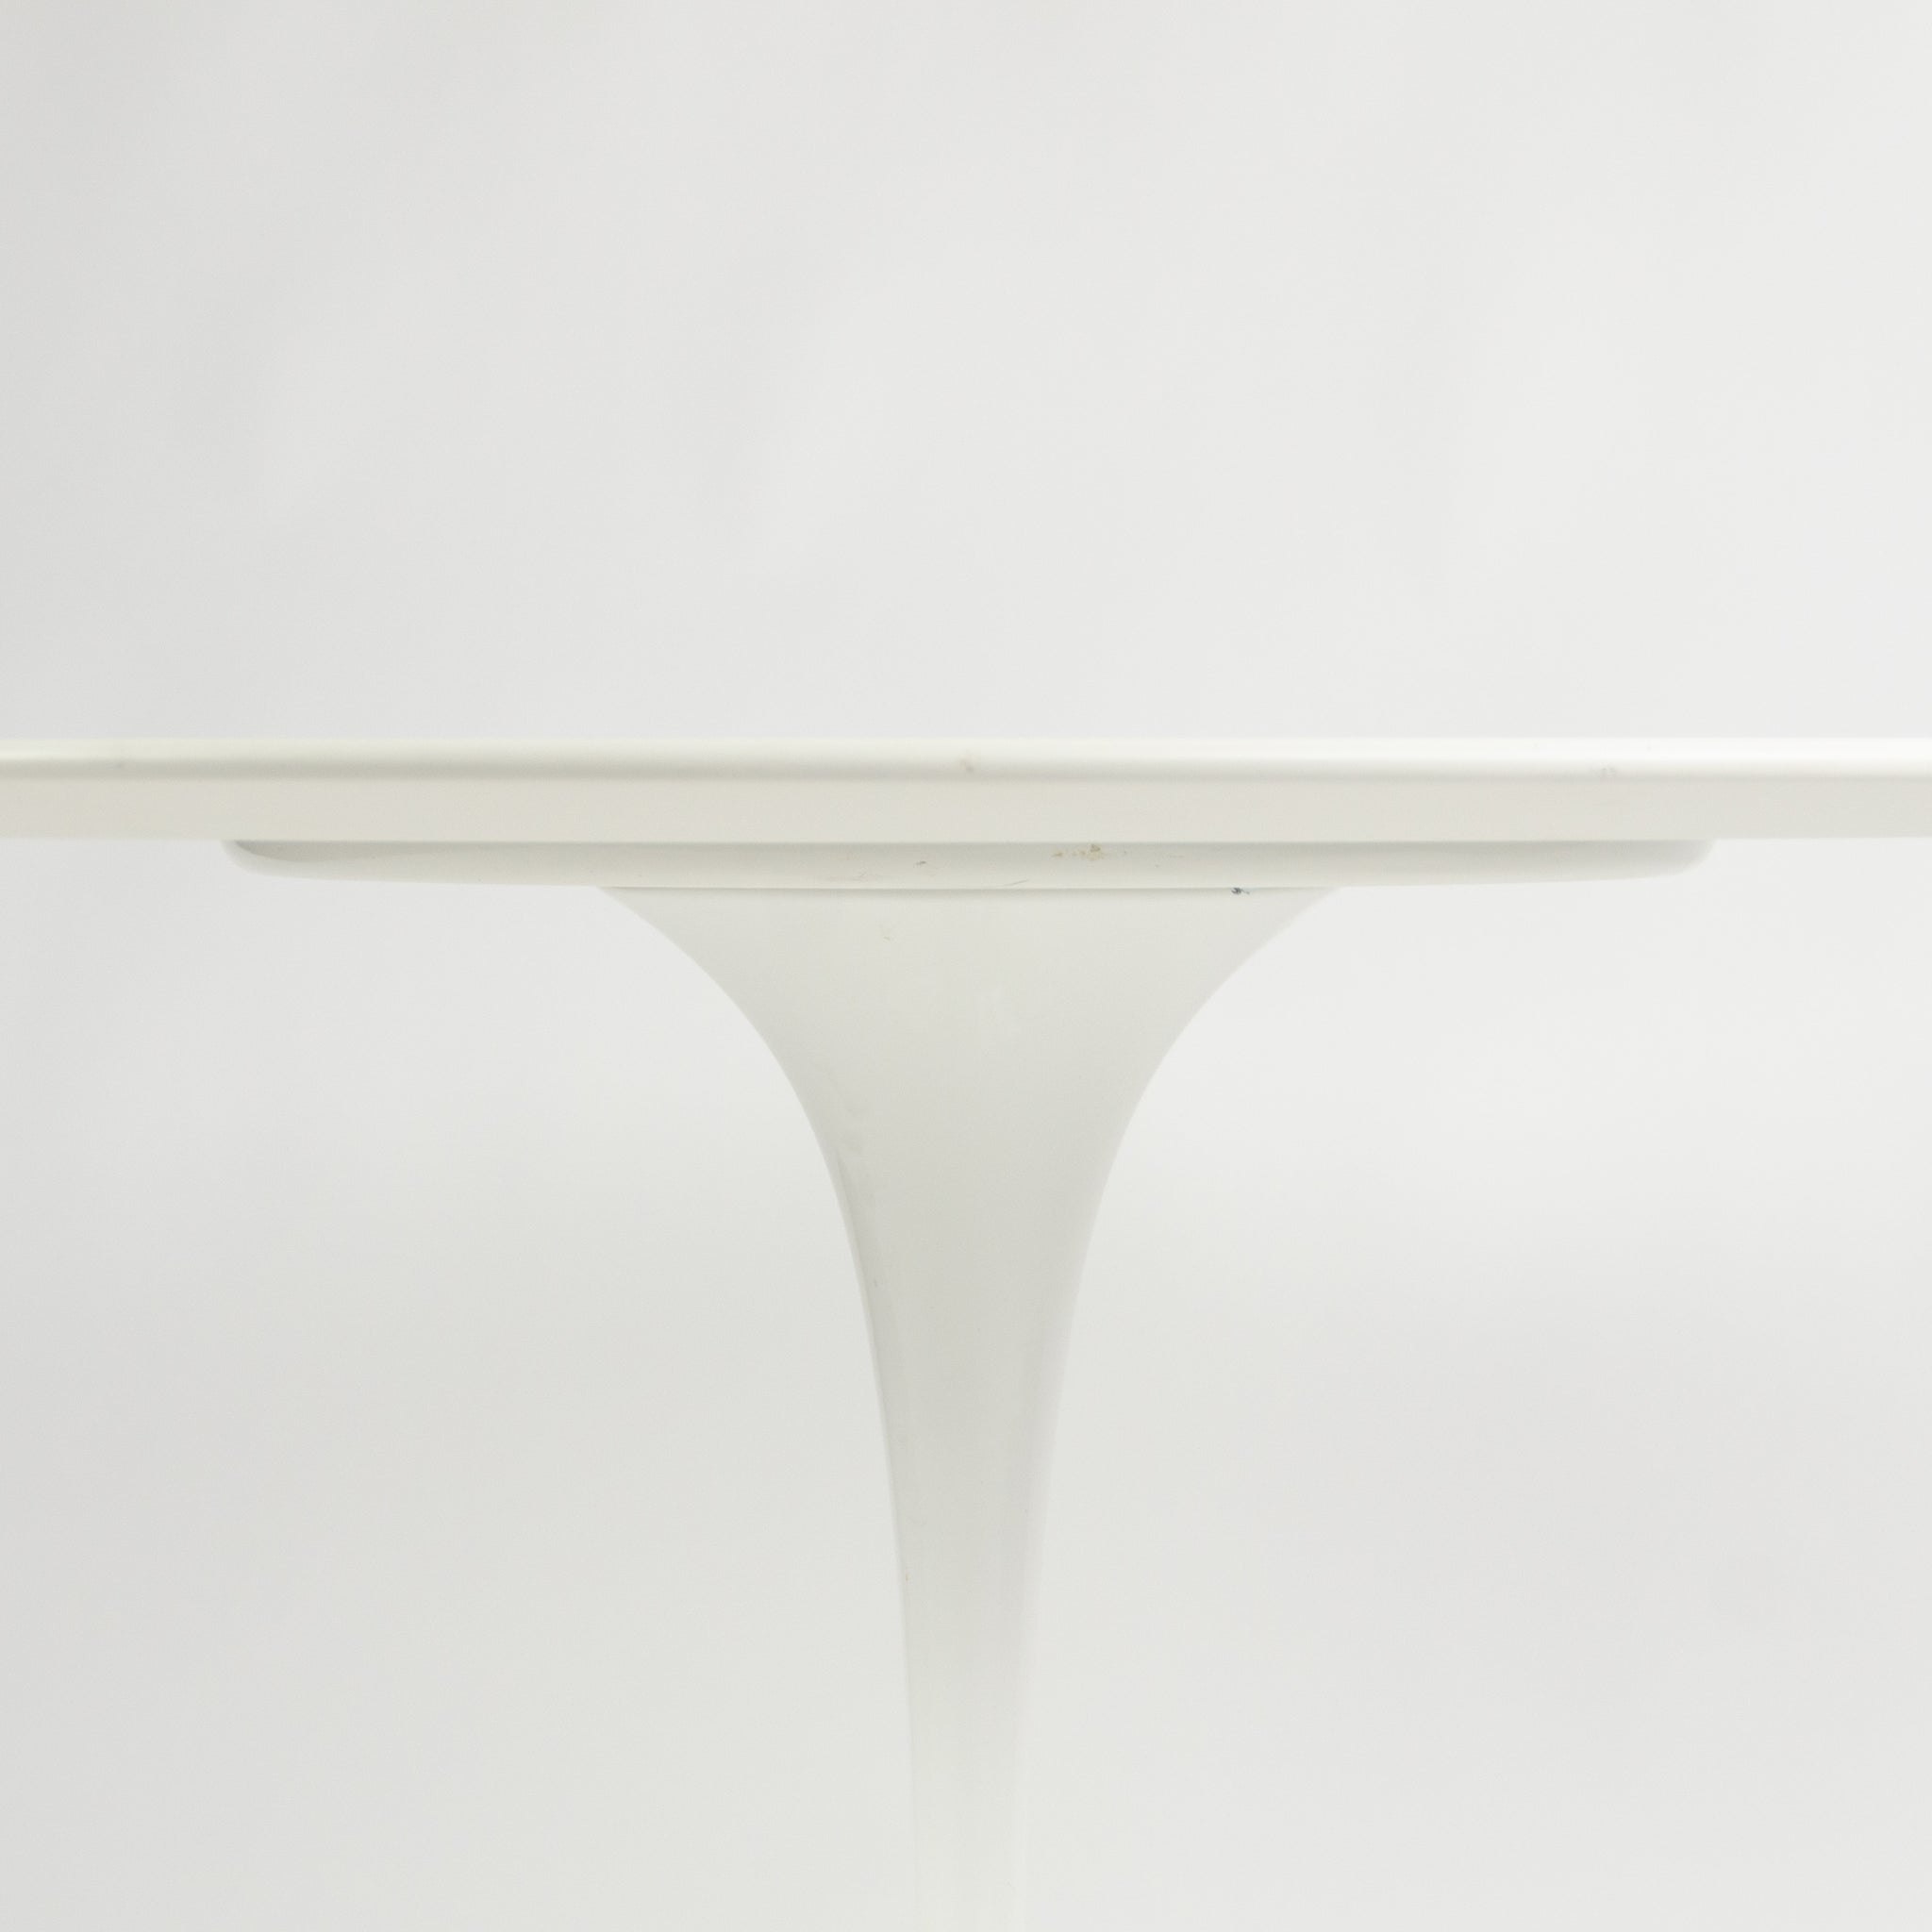 SOLD 2010's Eero Saarinen For Knoll 42 Inch Tulip Dining Table White Laminate